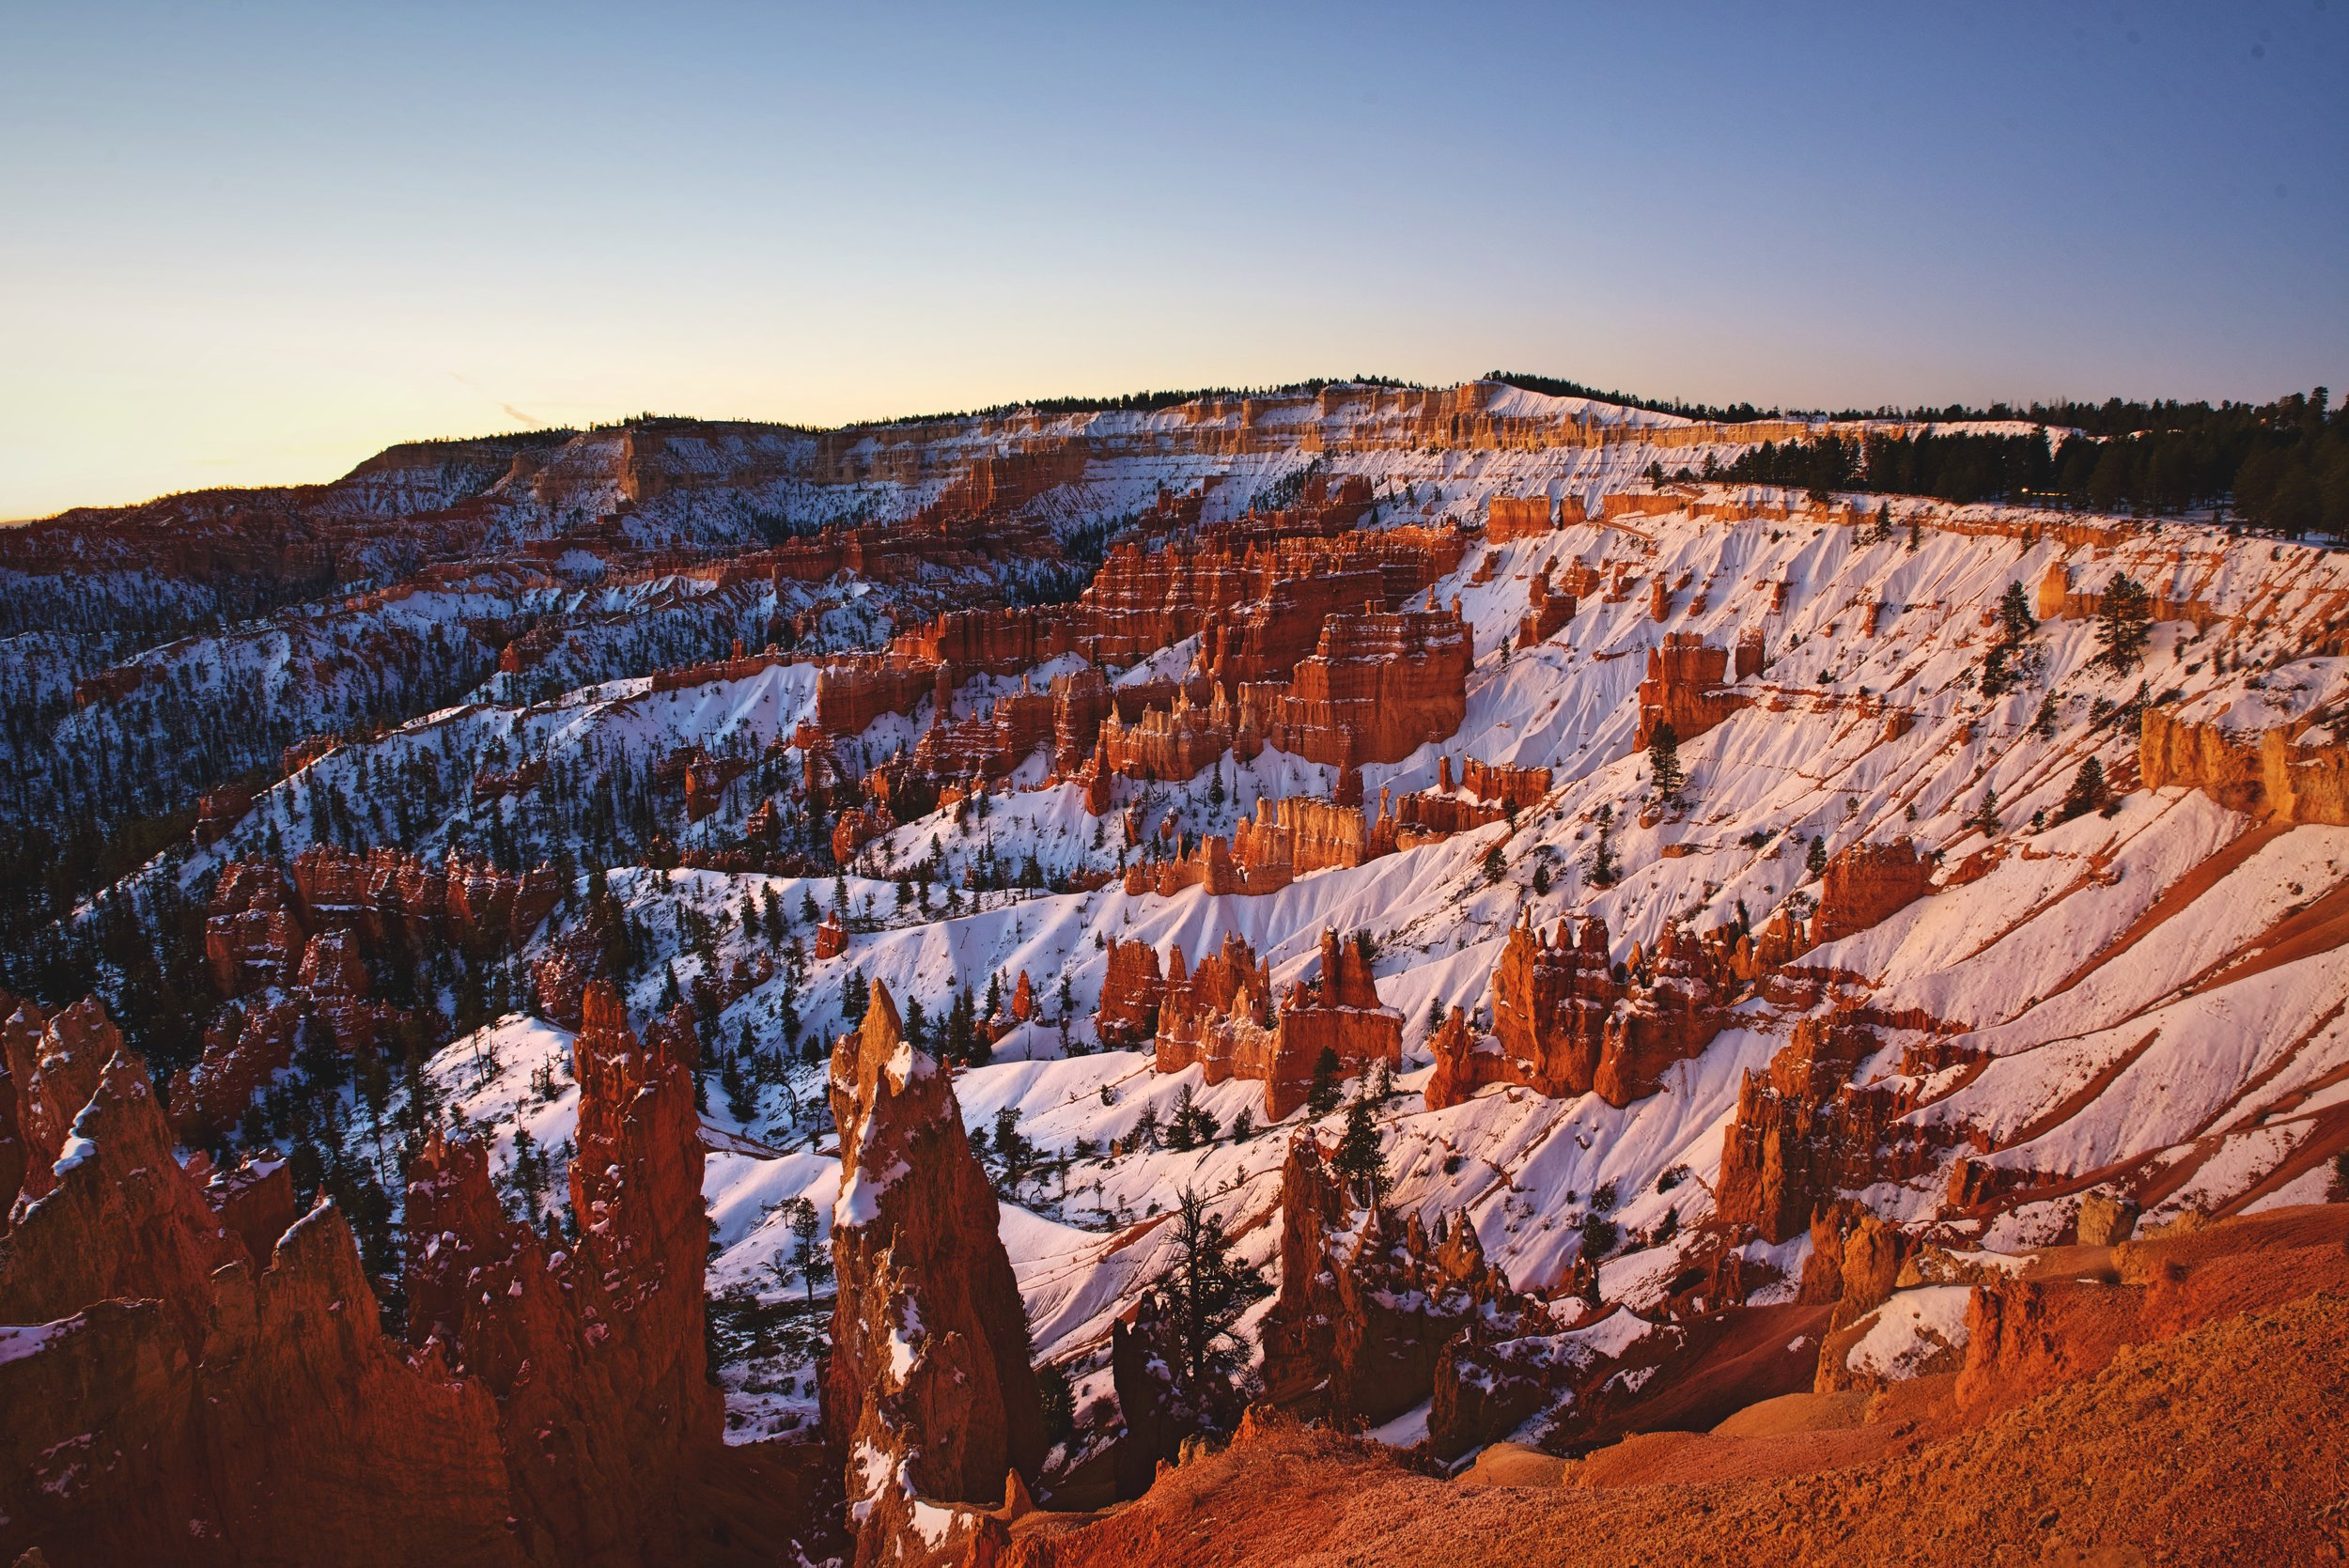 The snow is turned a rosy color when the sun rises in winter.